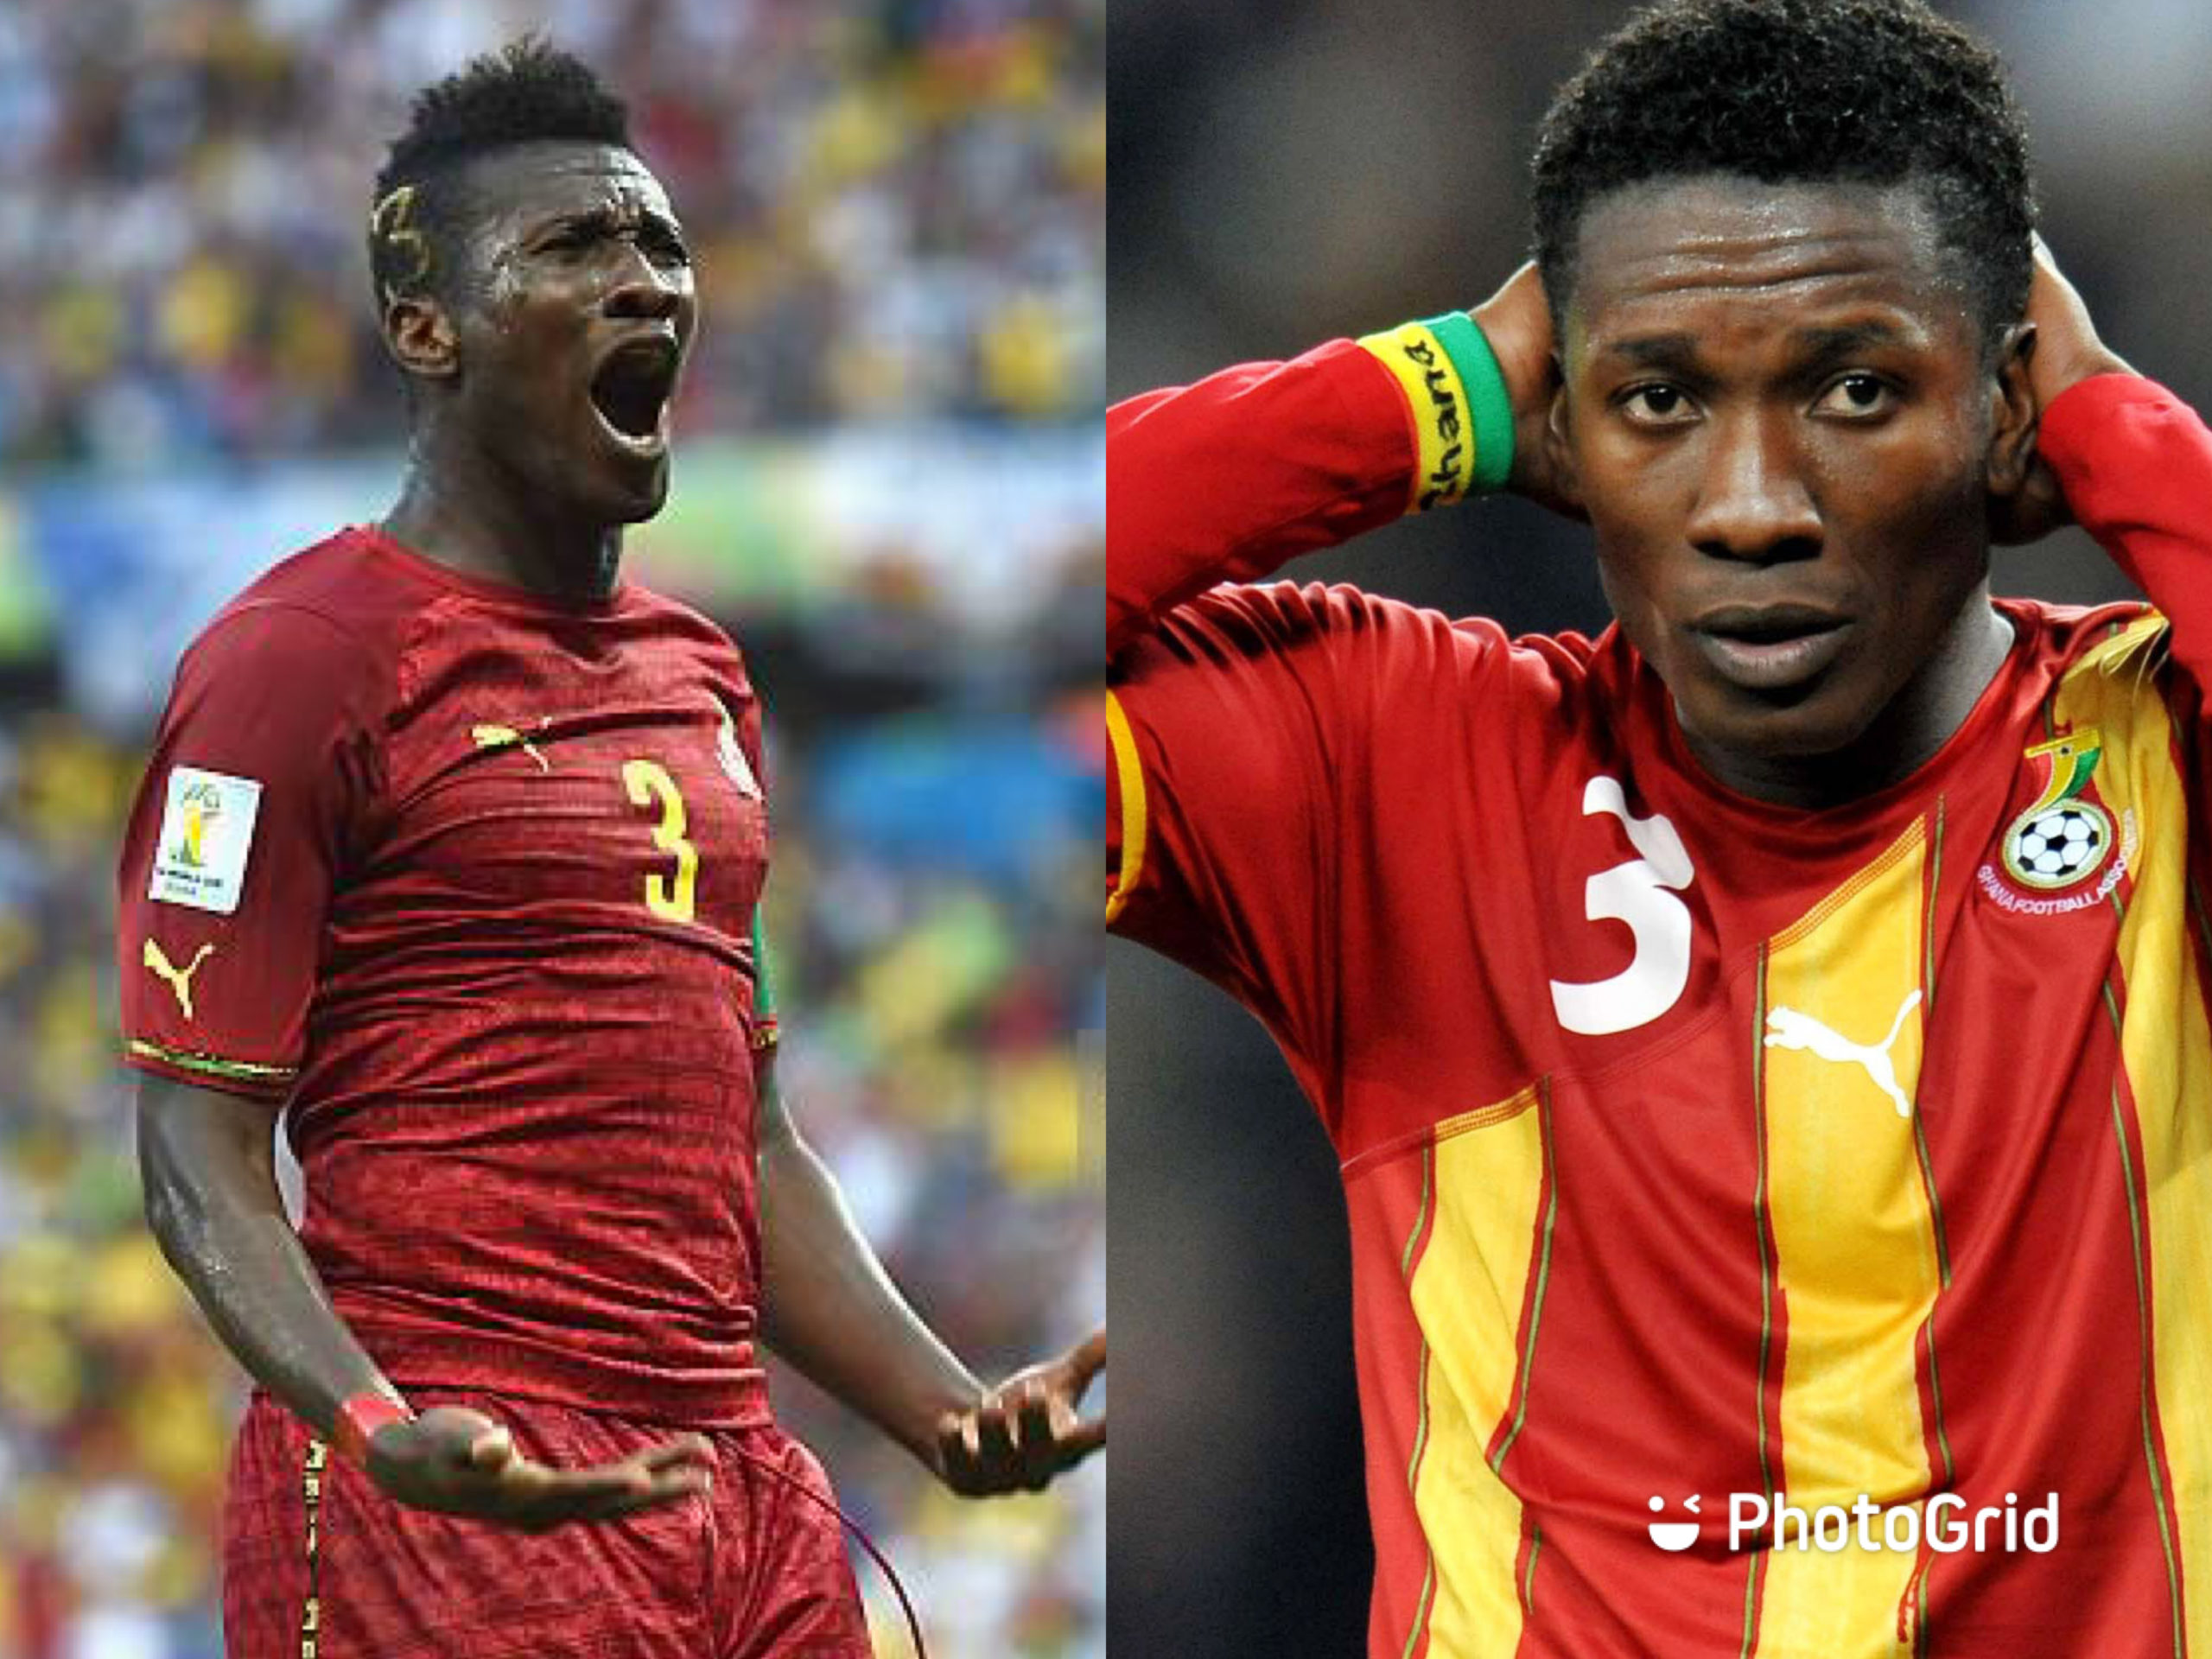 We Celebrate failure more than achievements- Asamoah Gyan